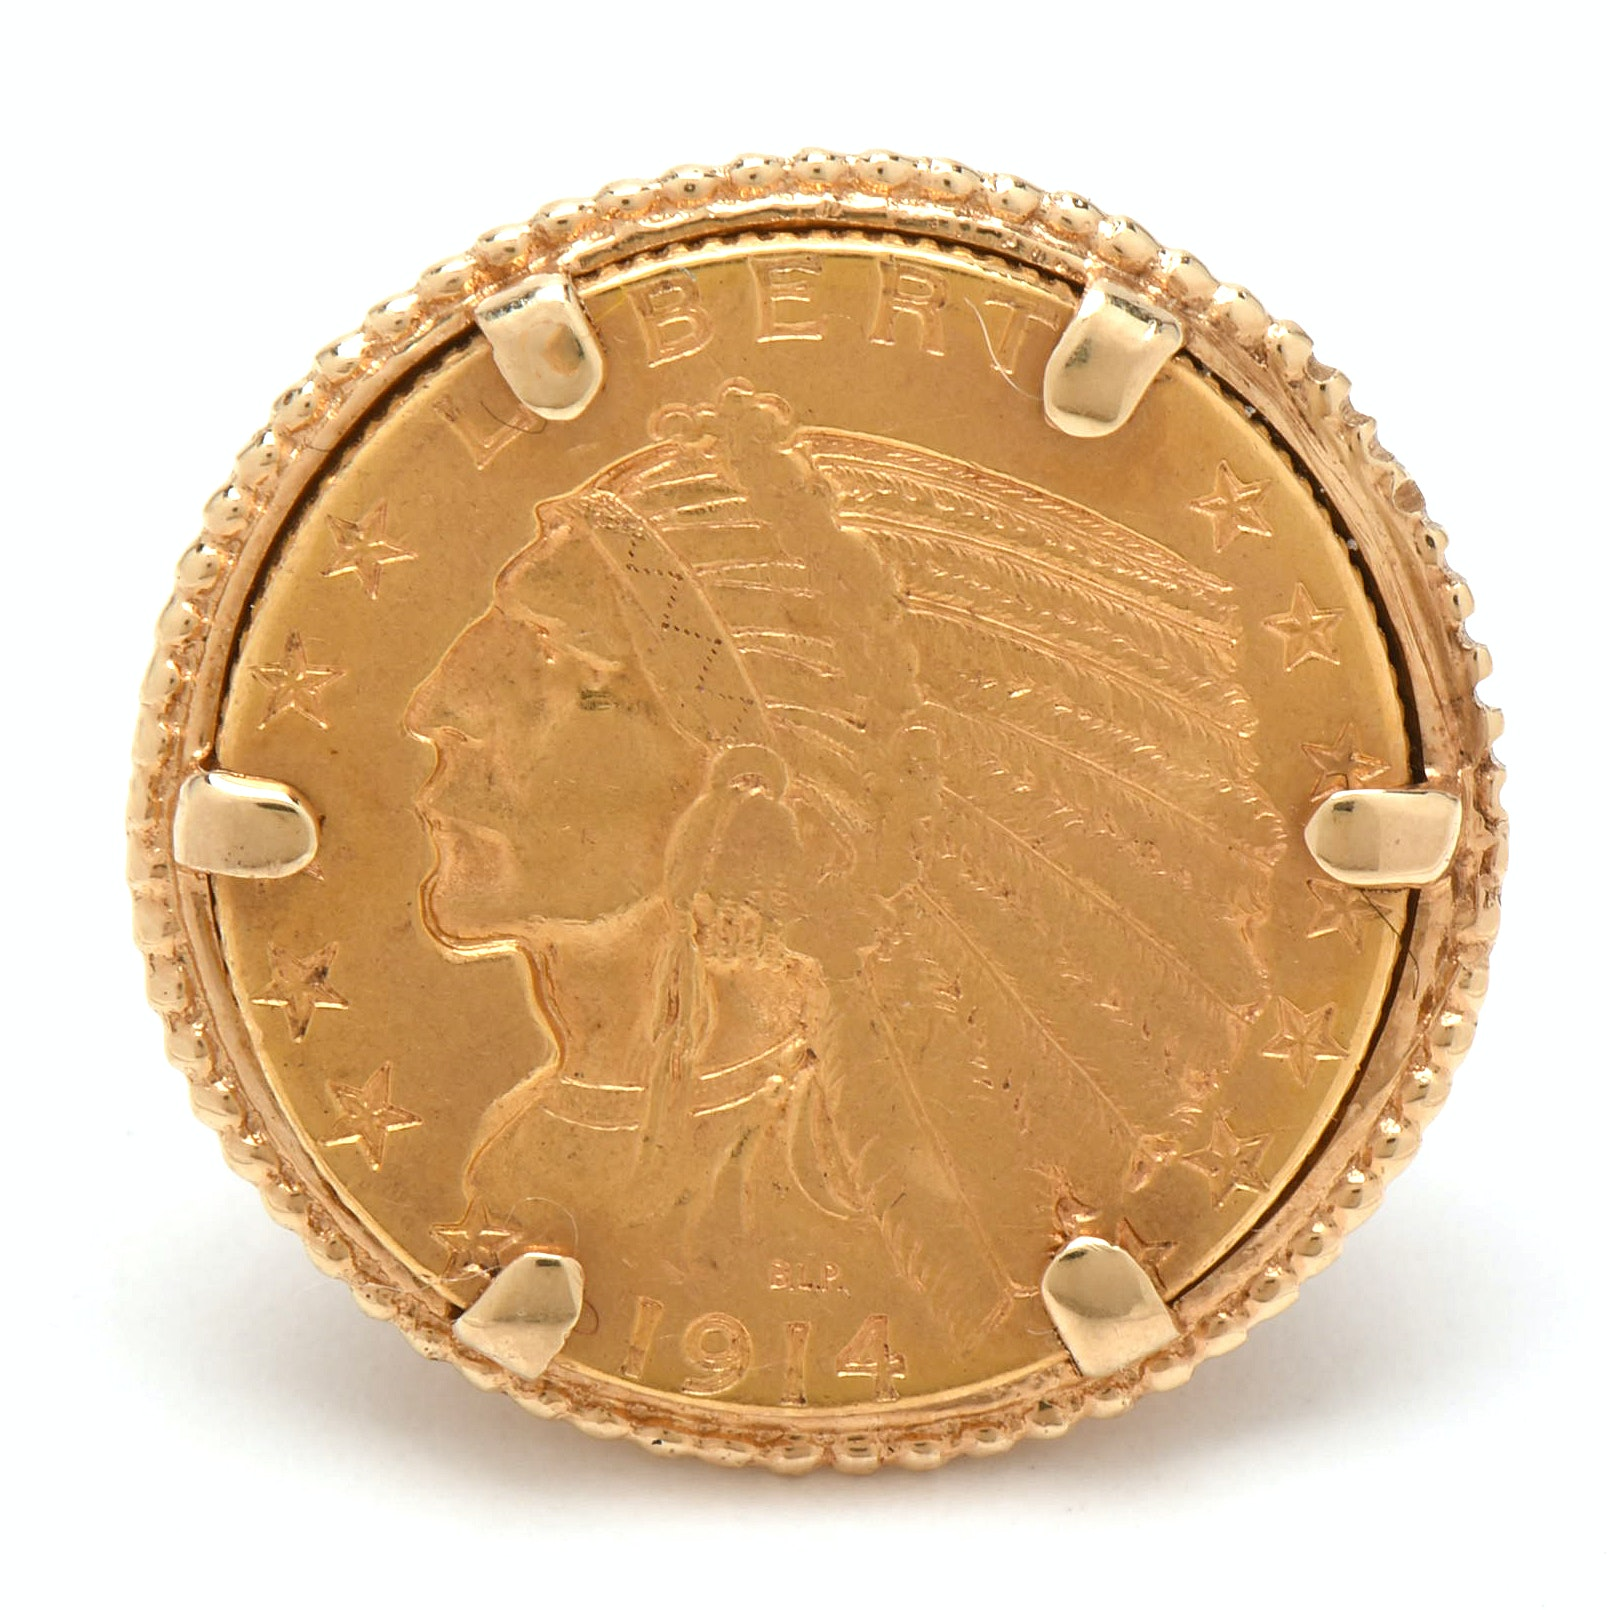 14K Yellow Gold Ring with 1914 Indian Head $5 Half Eagle Coin